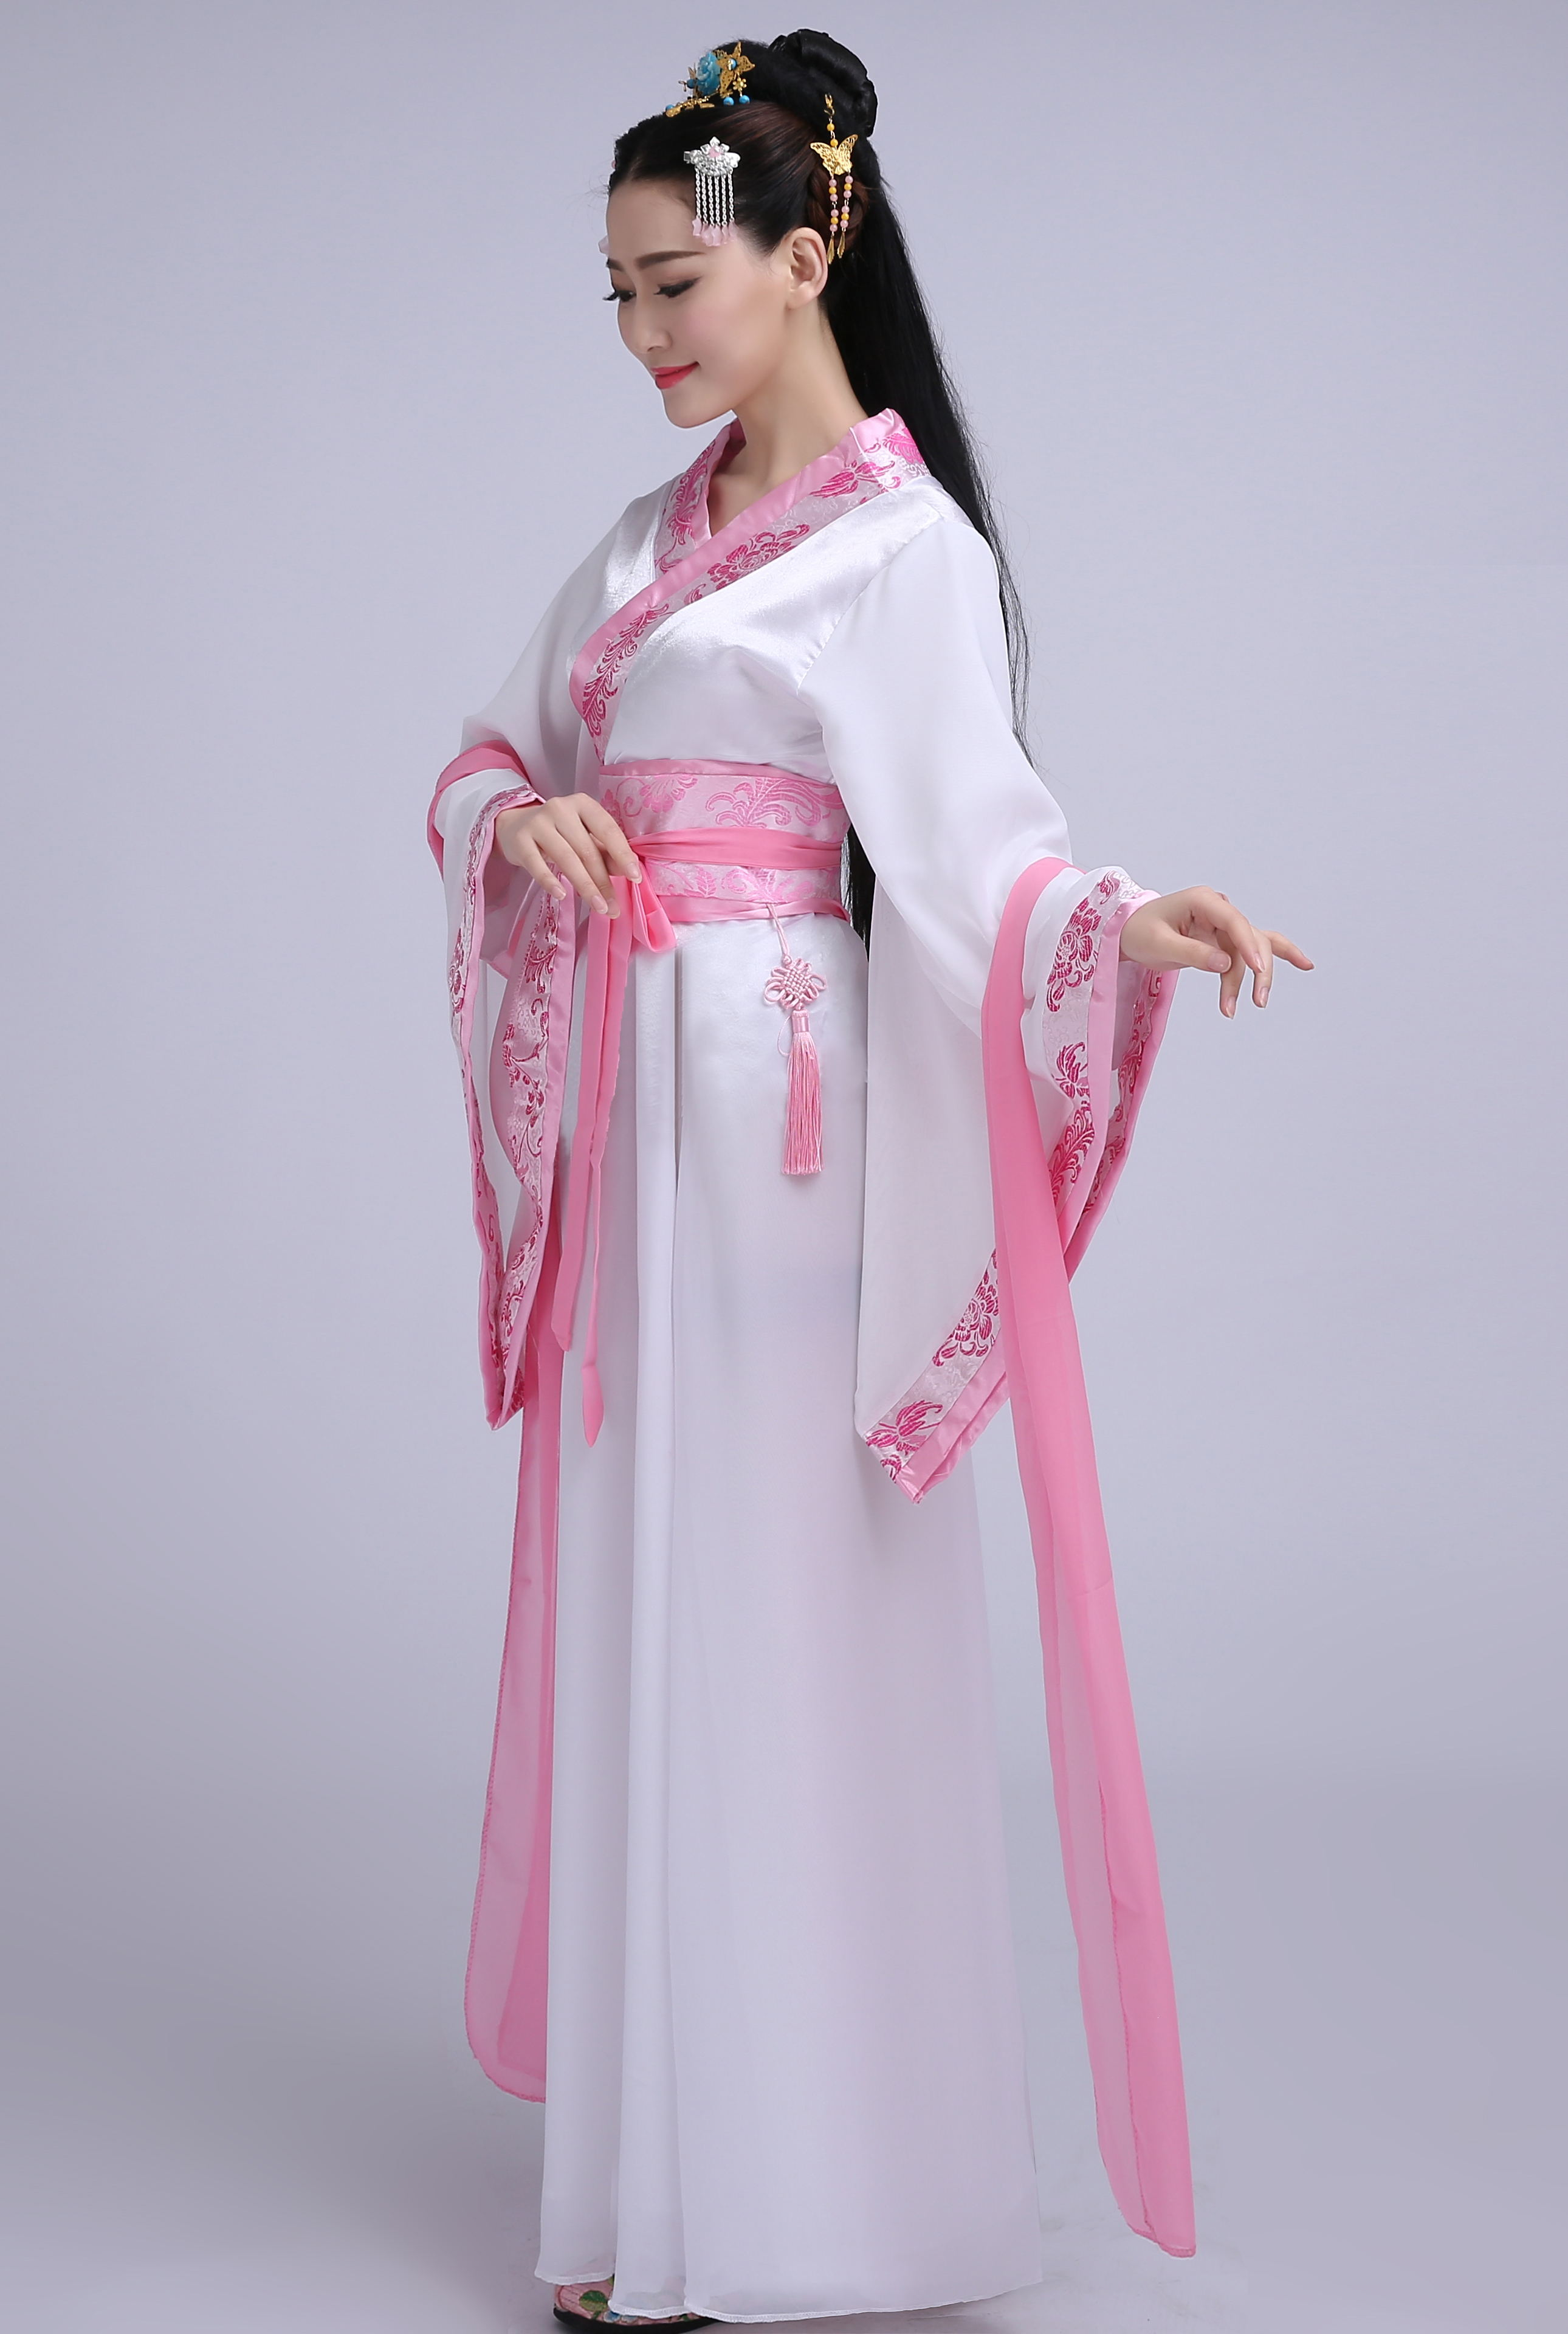 14270d15d ... fairy costume costume hanfu women's ancient guzheng performance Tang  Dynasty studio photo elegant · Zoom · lightbox moreview · lightbox moreview  ...